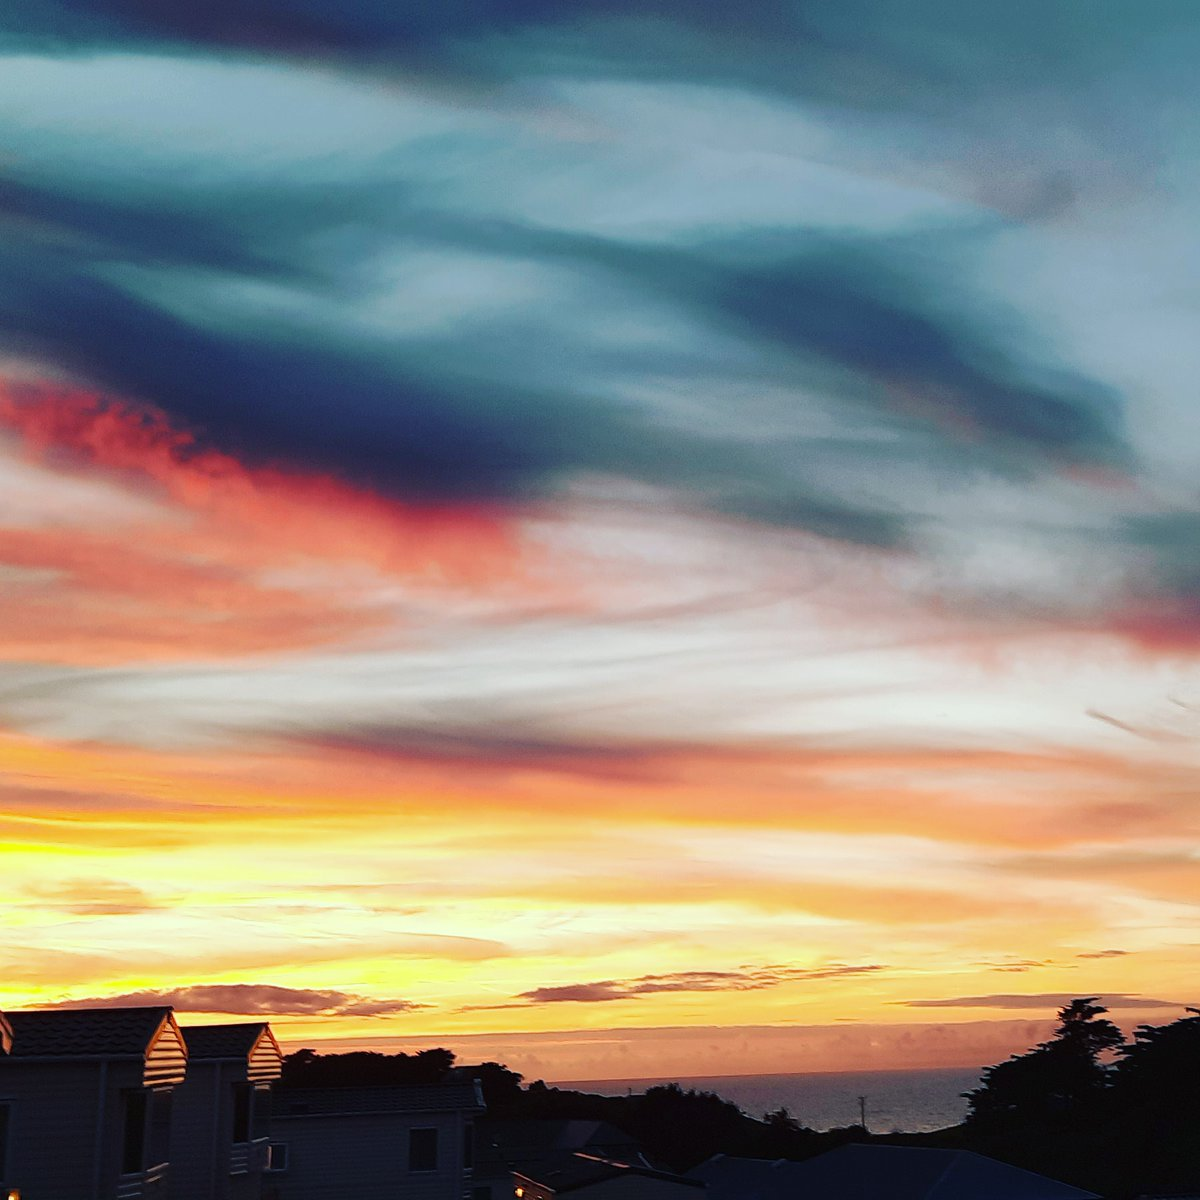 I wanted to share this amazing sunset, taken on the first anniversary of my daughter's passing. It gave me hope and strength.   Love & light  Louise   @GalenaWellbeing  #hope #strength #Wellbeing #sunset #selfcare #loss #positivity #Mentalhealth